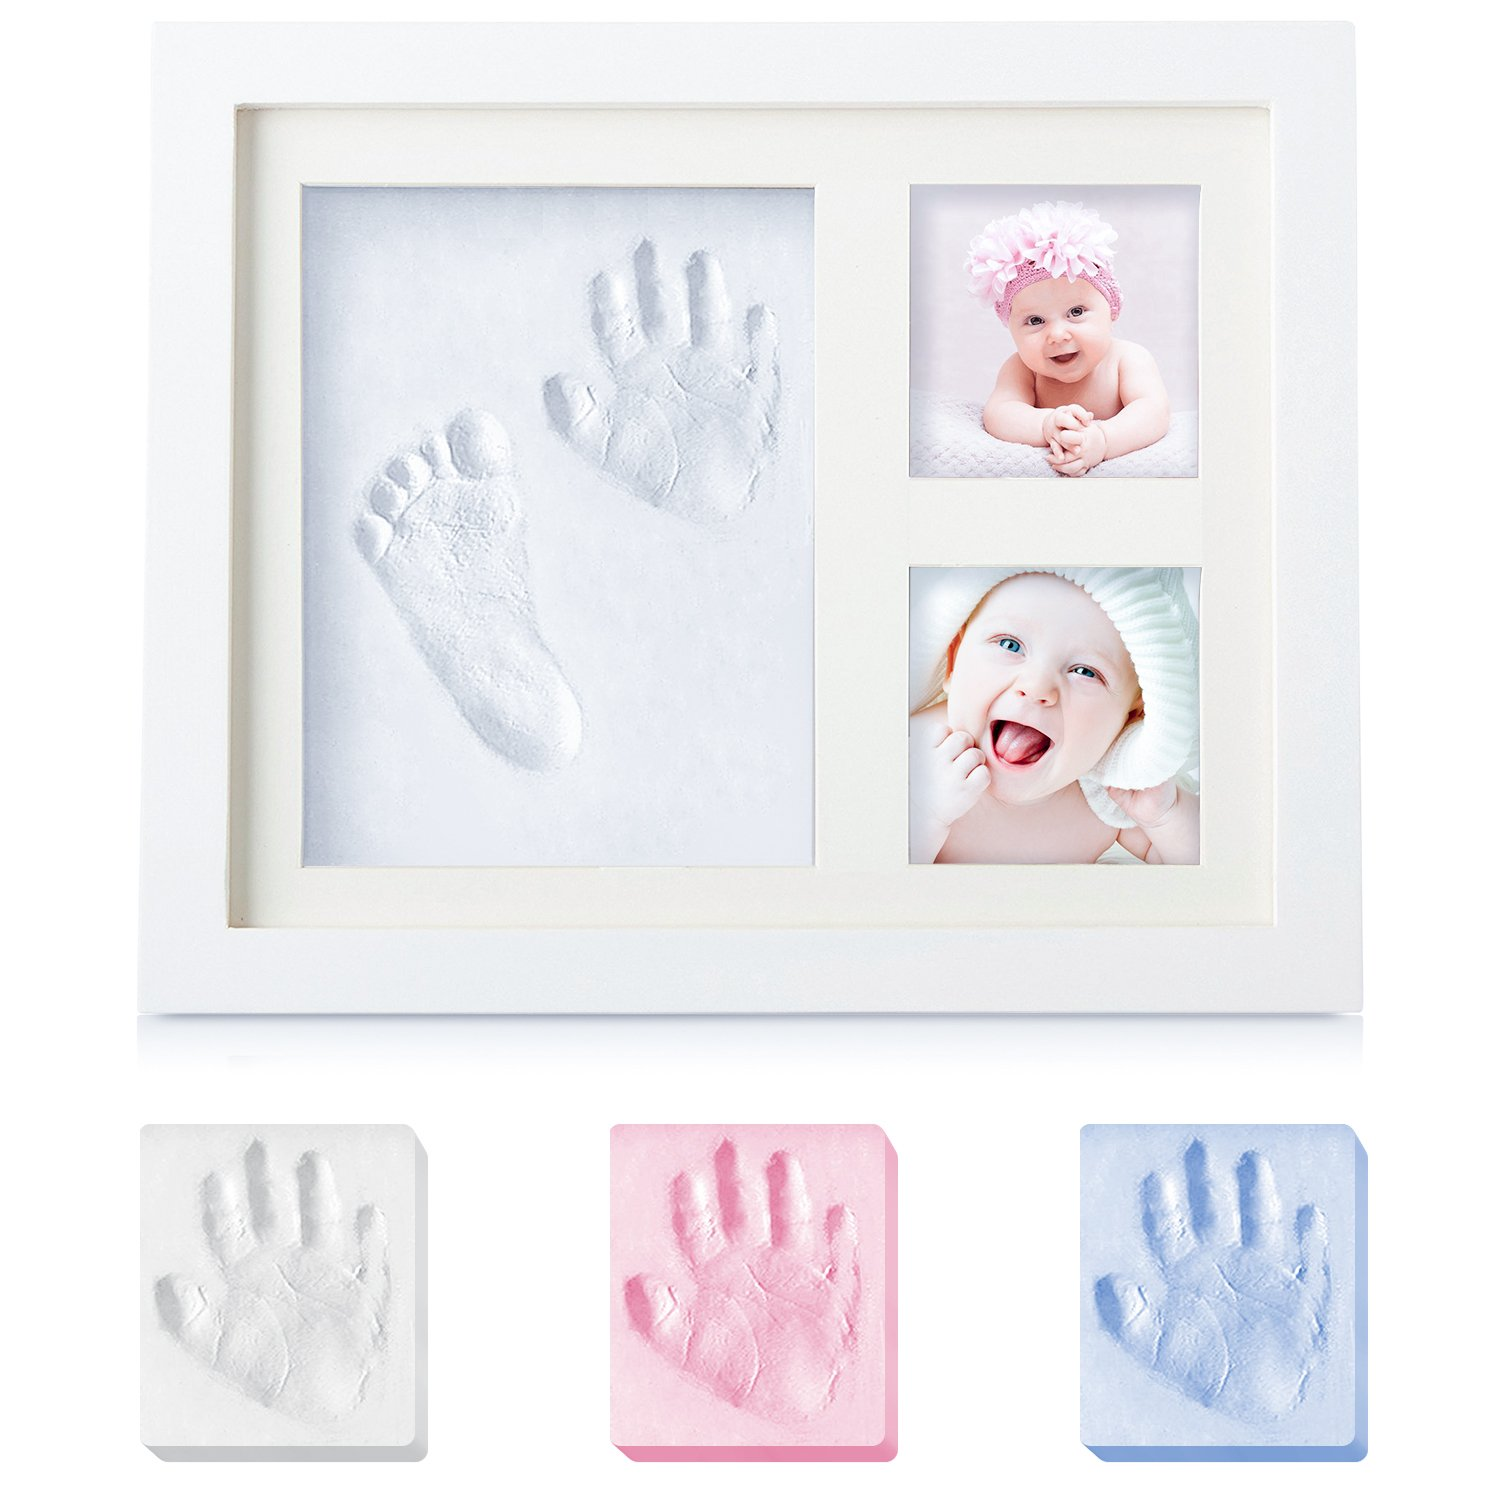 Baby Gifts Newborn Handprint and Footprint Photo Frame Kit Keepsake, Baby Shower Gifts for Registry, Best Baby Gifts for Girls and Boys, Environmentally Friendly Wood&Natural Non-Toxic Clay SANMIO SA11WH